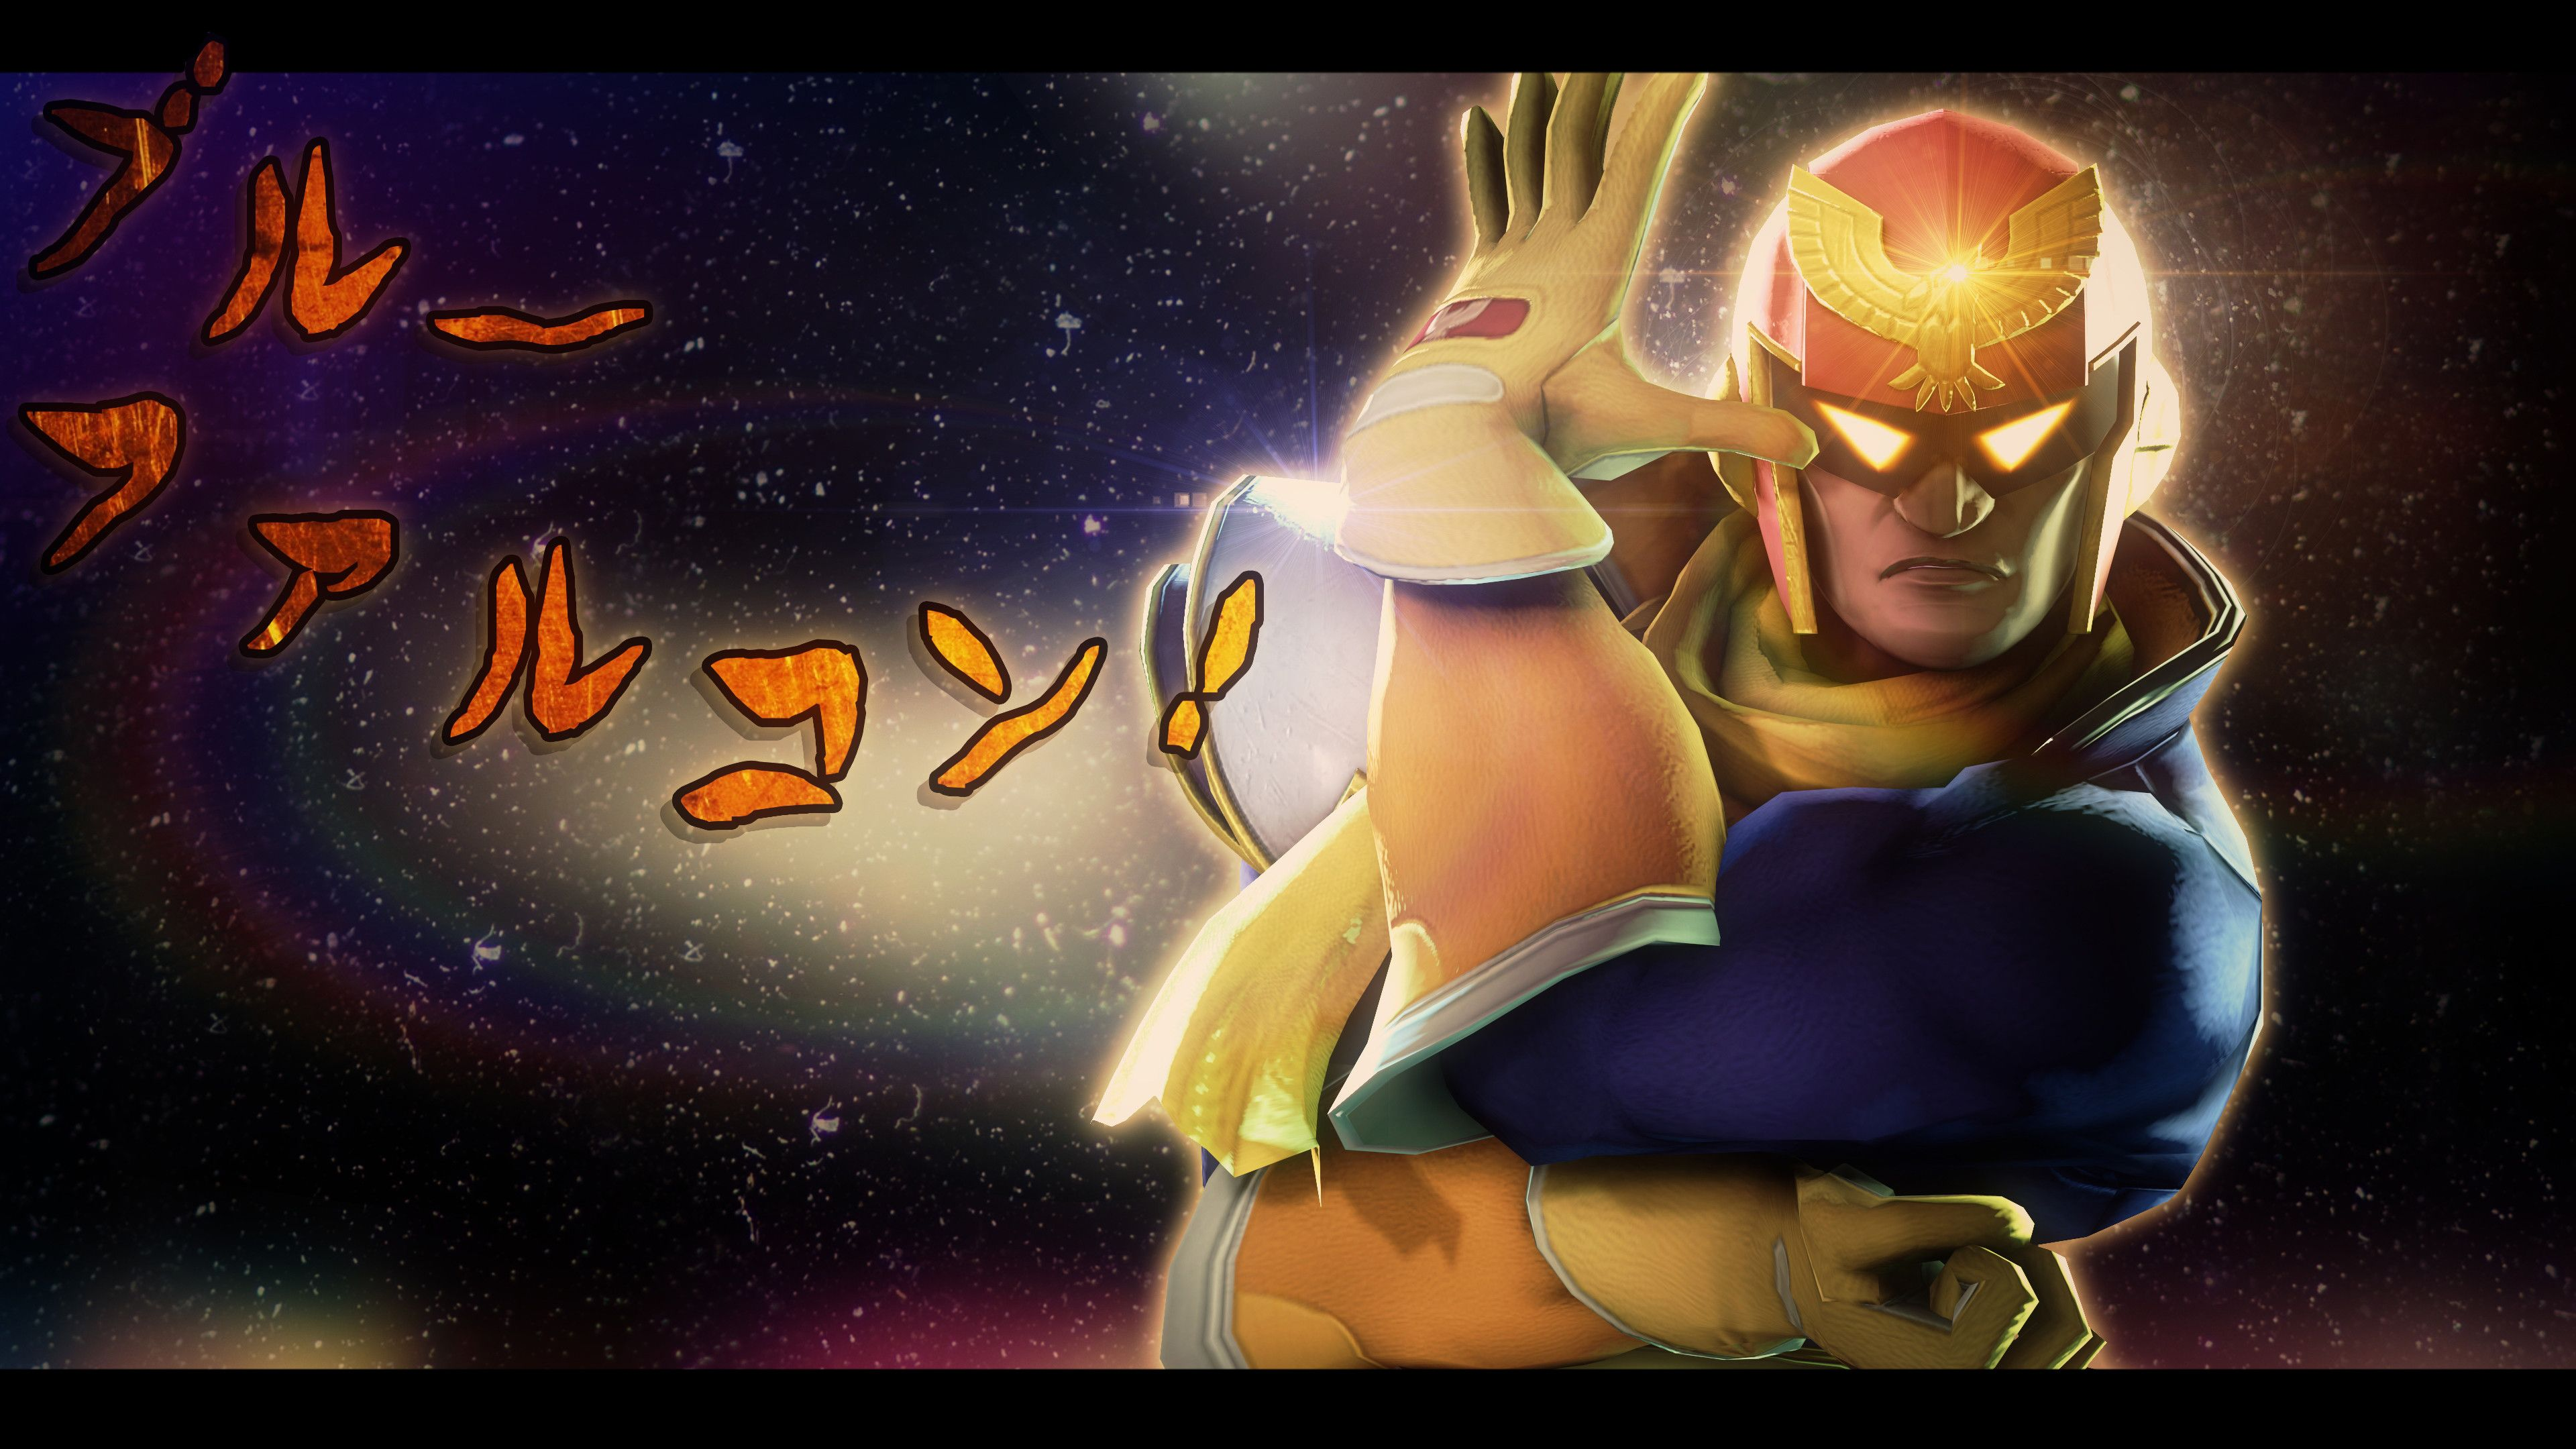 75 Captain Falcon Wallpapers On Wallpaperplay Captain Falcon Captain Falcon Art Falcon Wallpaper